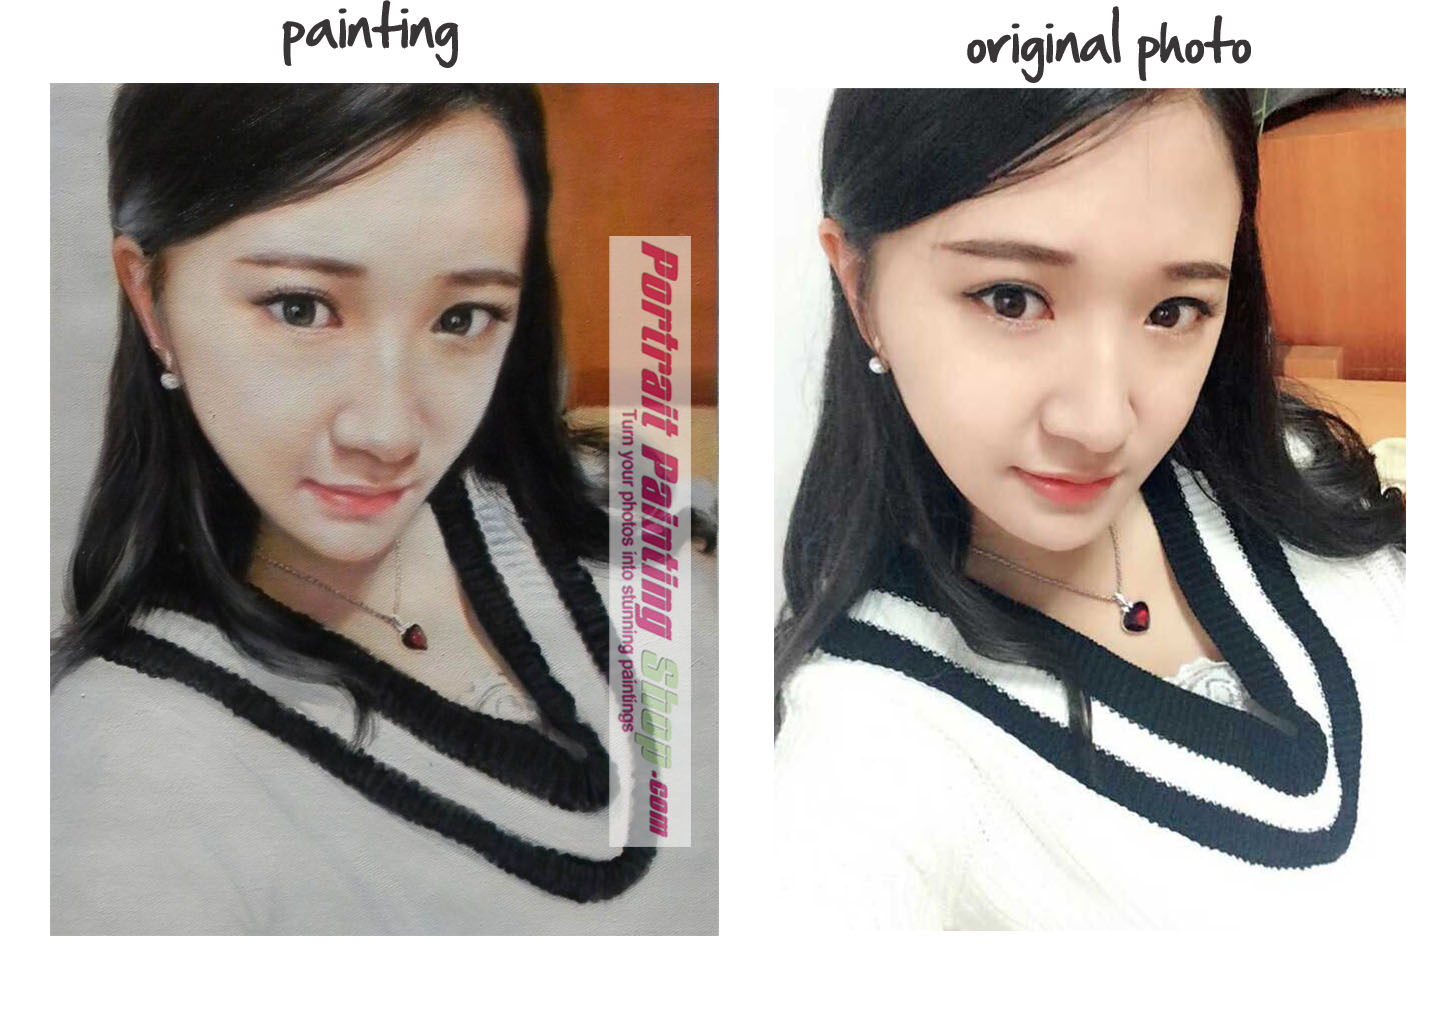 Comparison of original photo and portrait painting